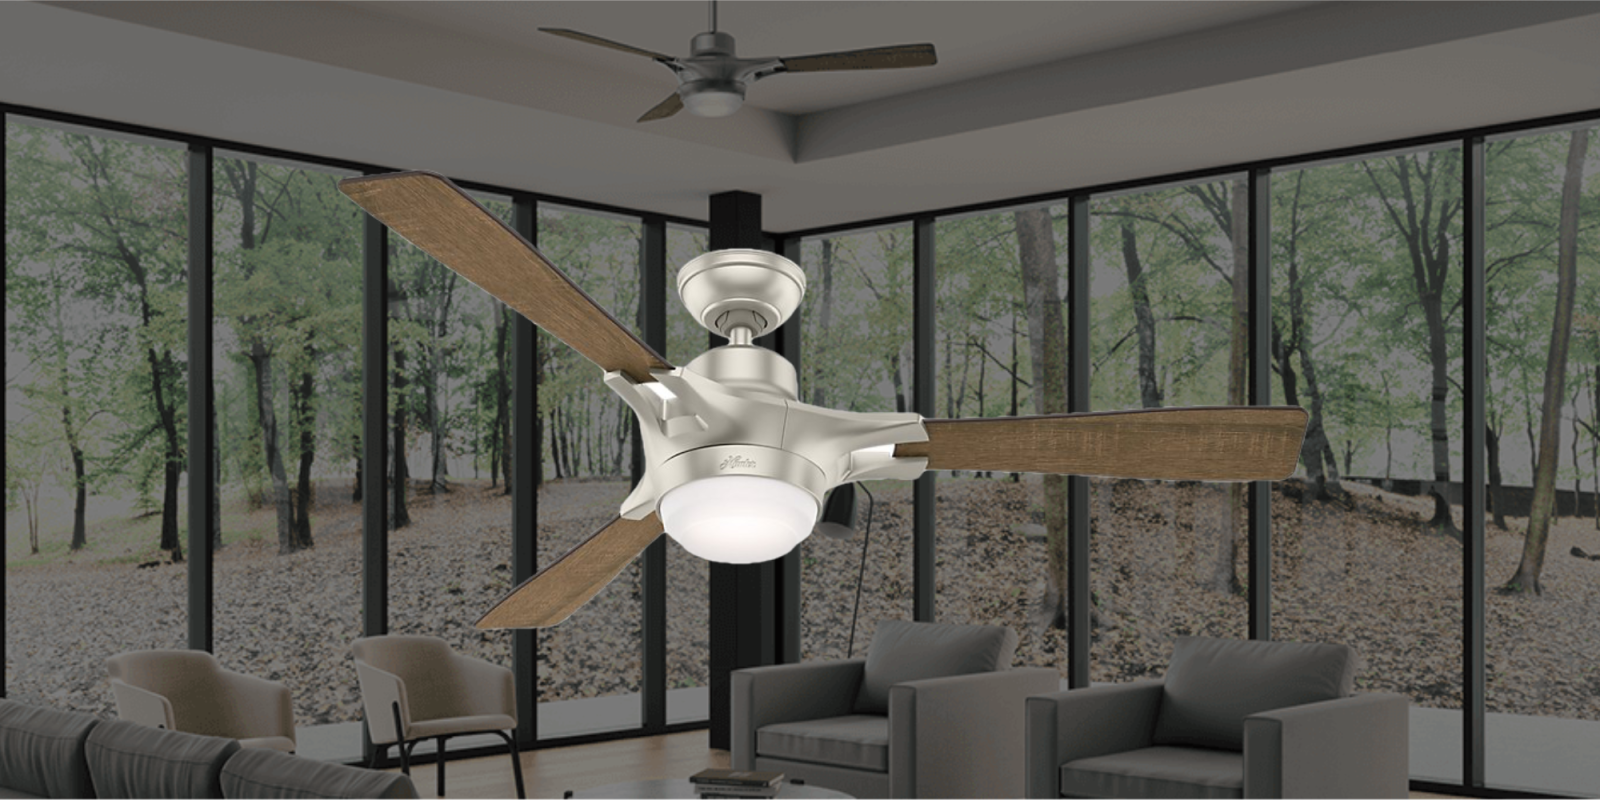 Hunter S Simpleconnect Homekit Enabled Ceiling Fan Drops To 289 Shipped Reg 350